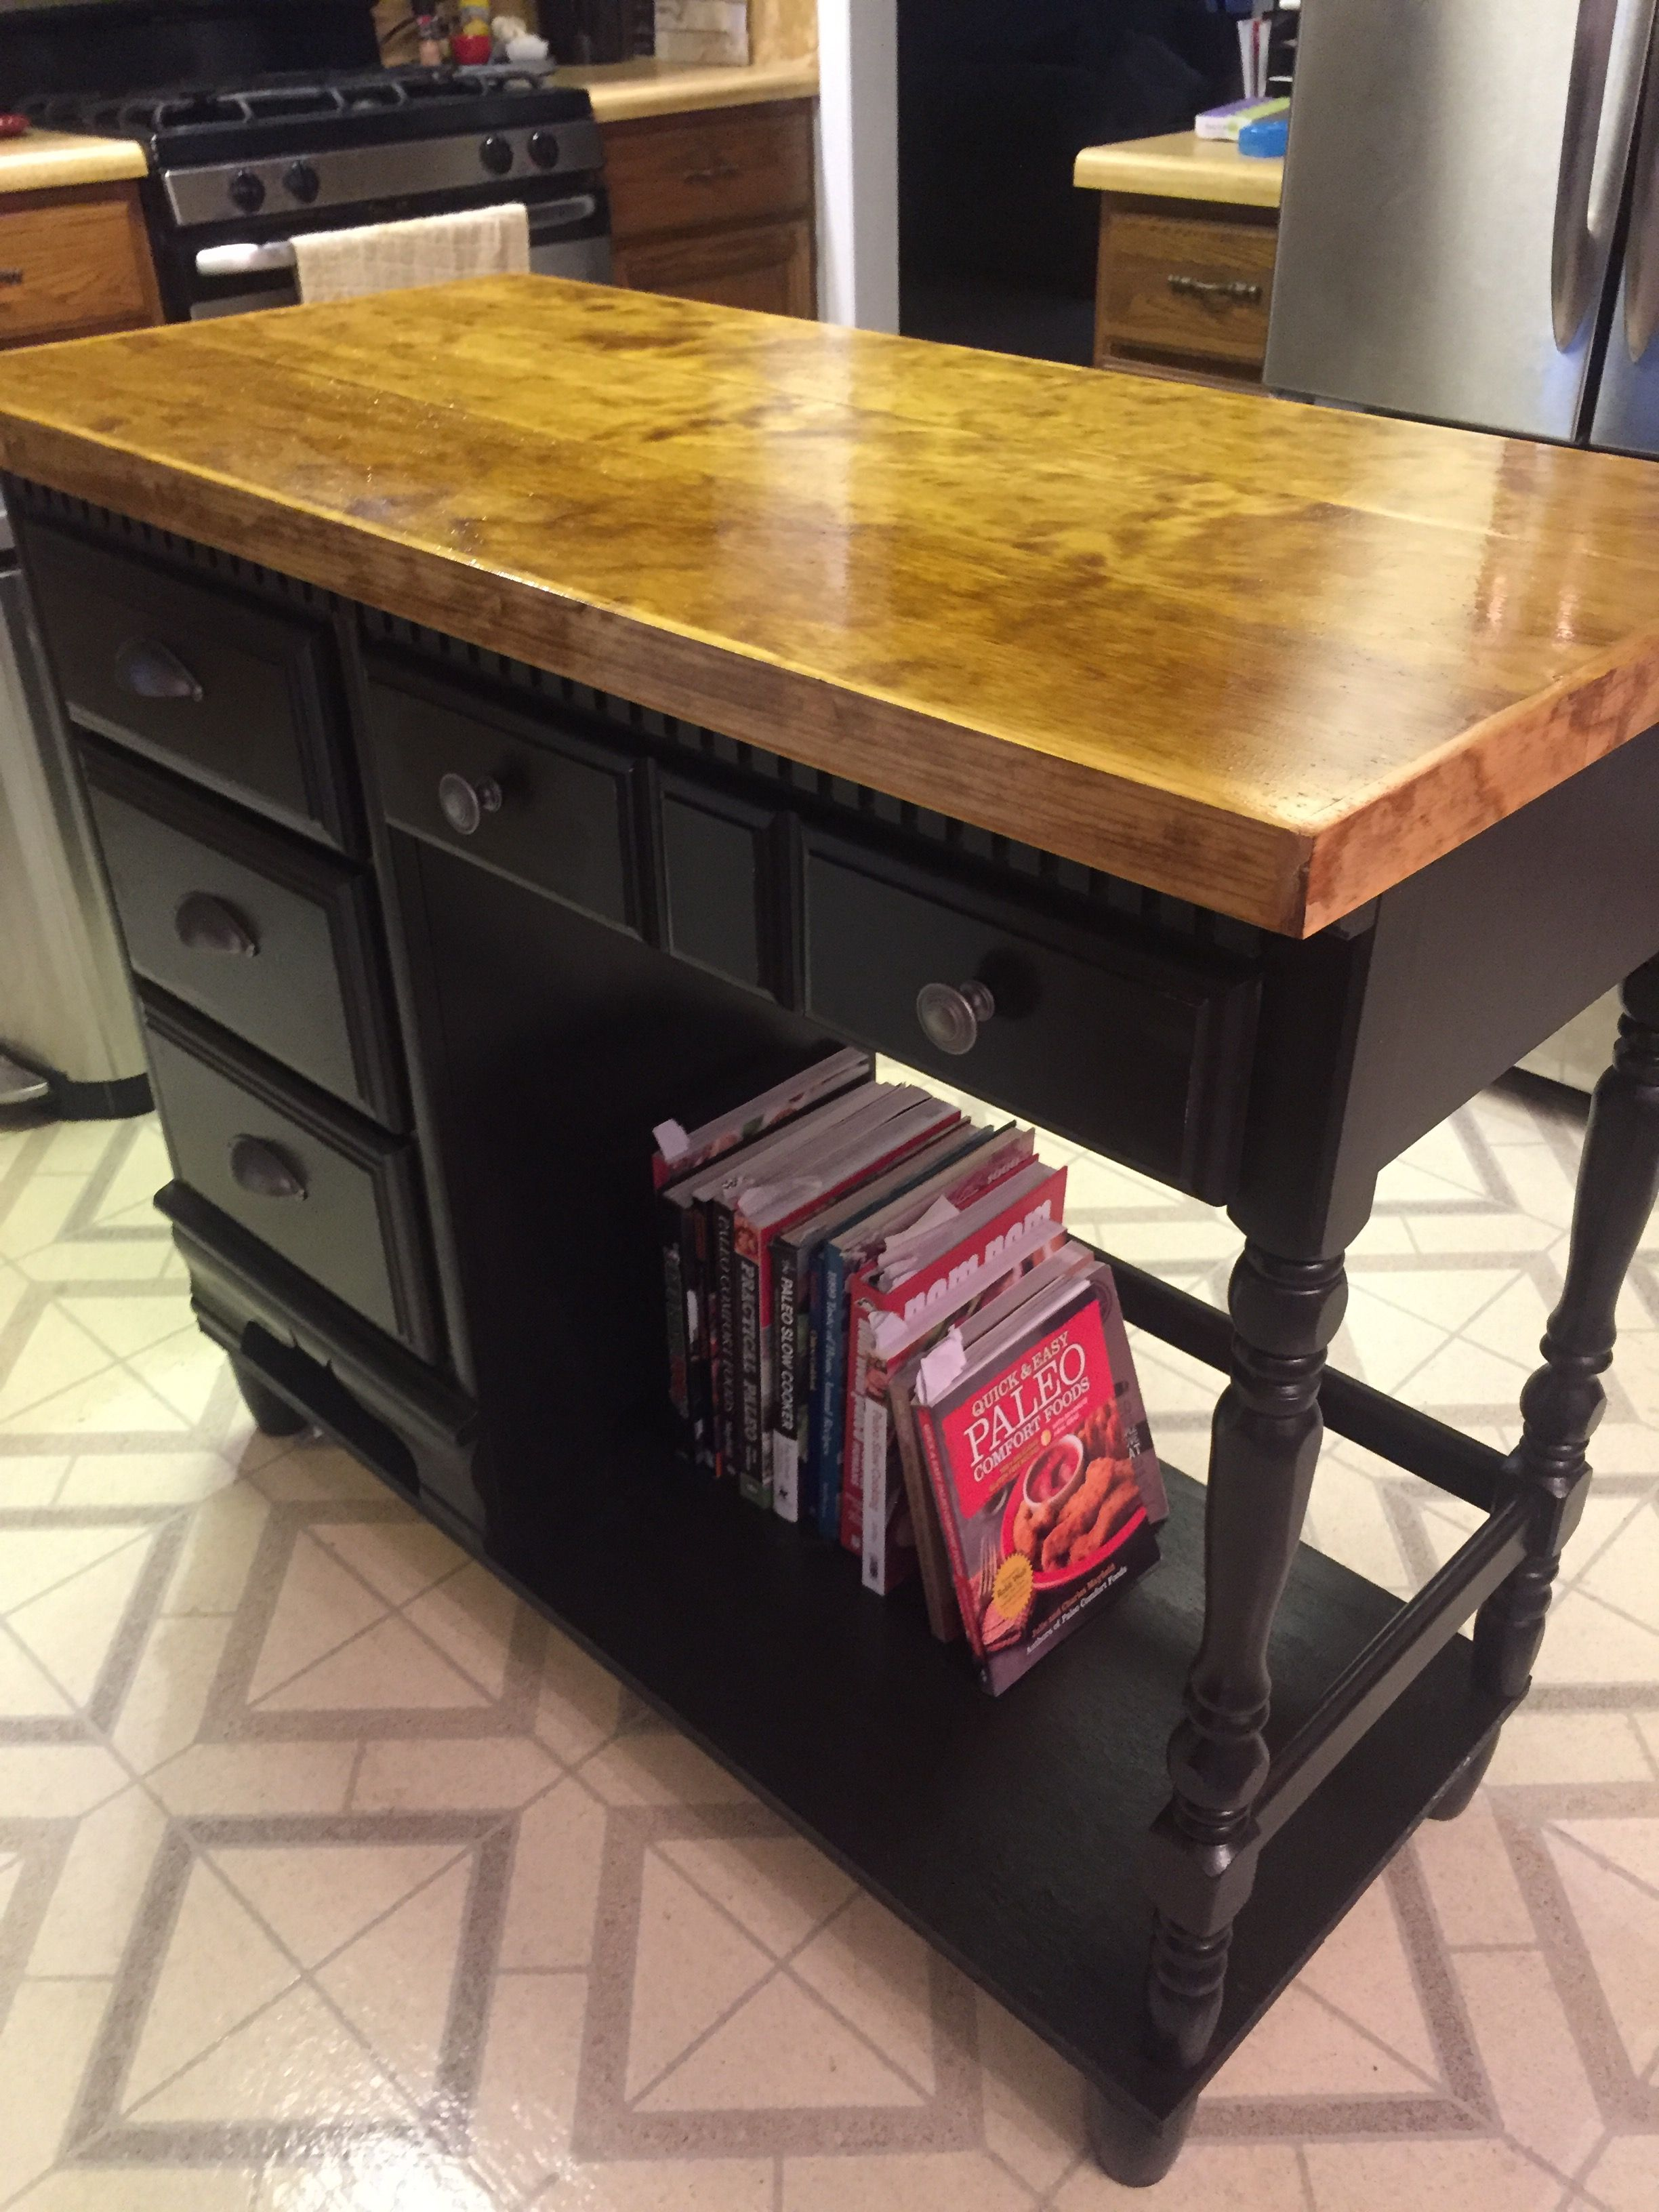 20 Recommended Small Kitchen Island Ideas On A Budget Tags